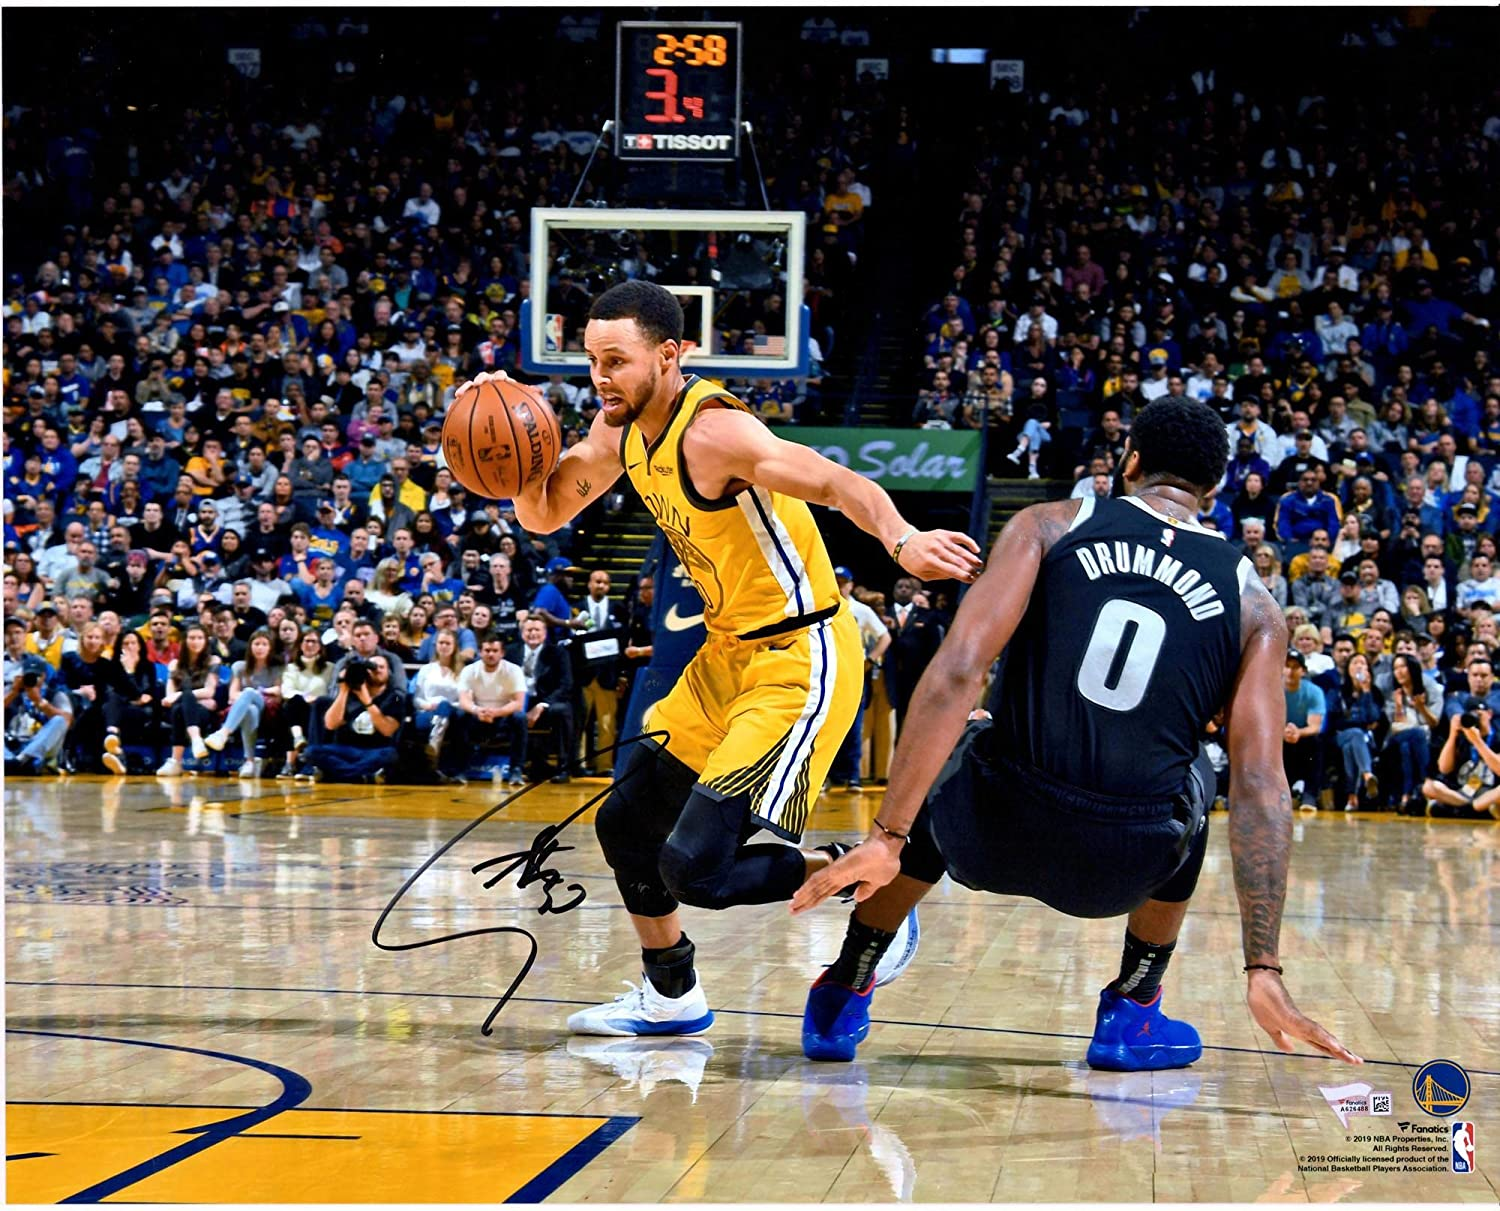 """Stephen Curry Golden State Warriors Autographed 16"""" x 20"""" Dribbling vs. Drummond Photograph - Autographed NBA Photos"""